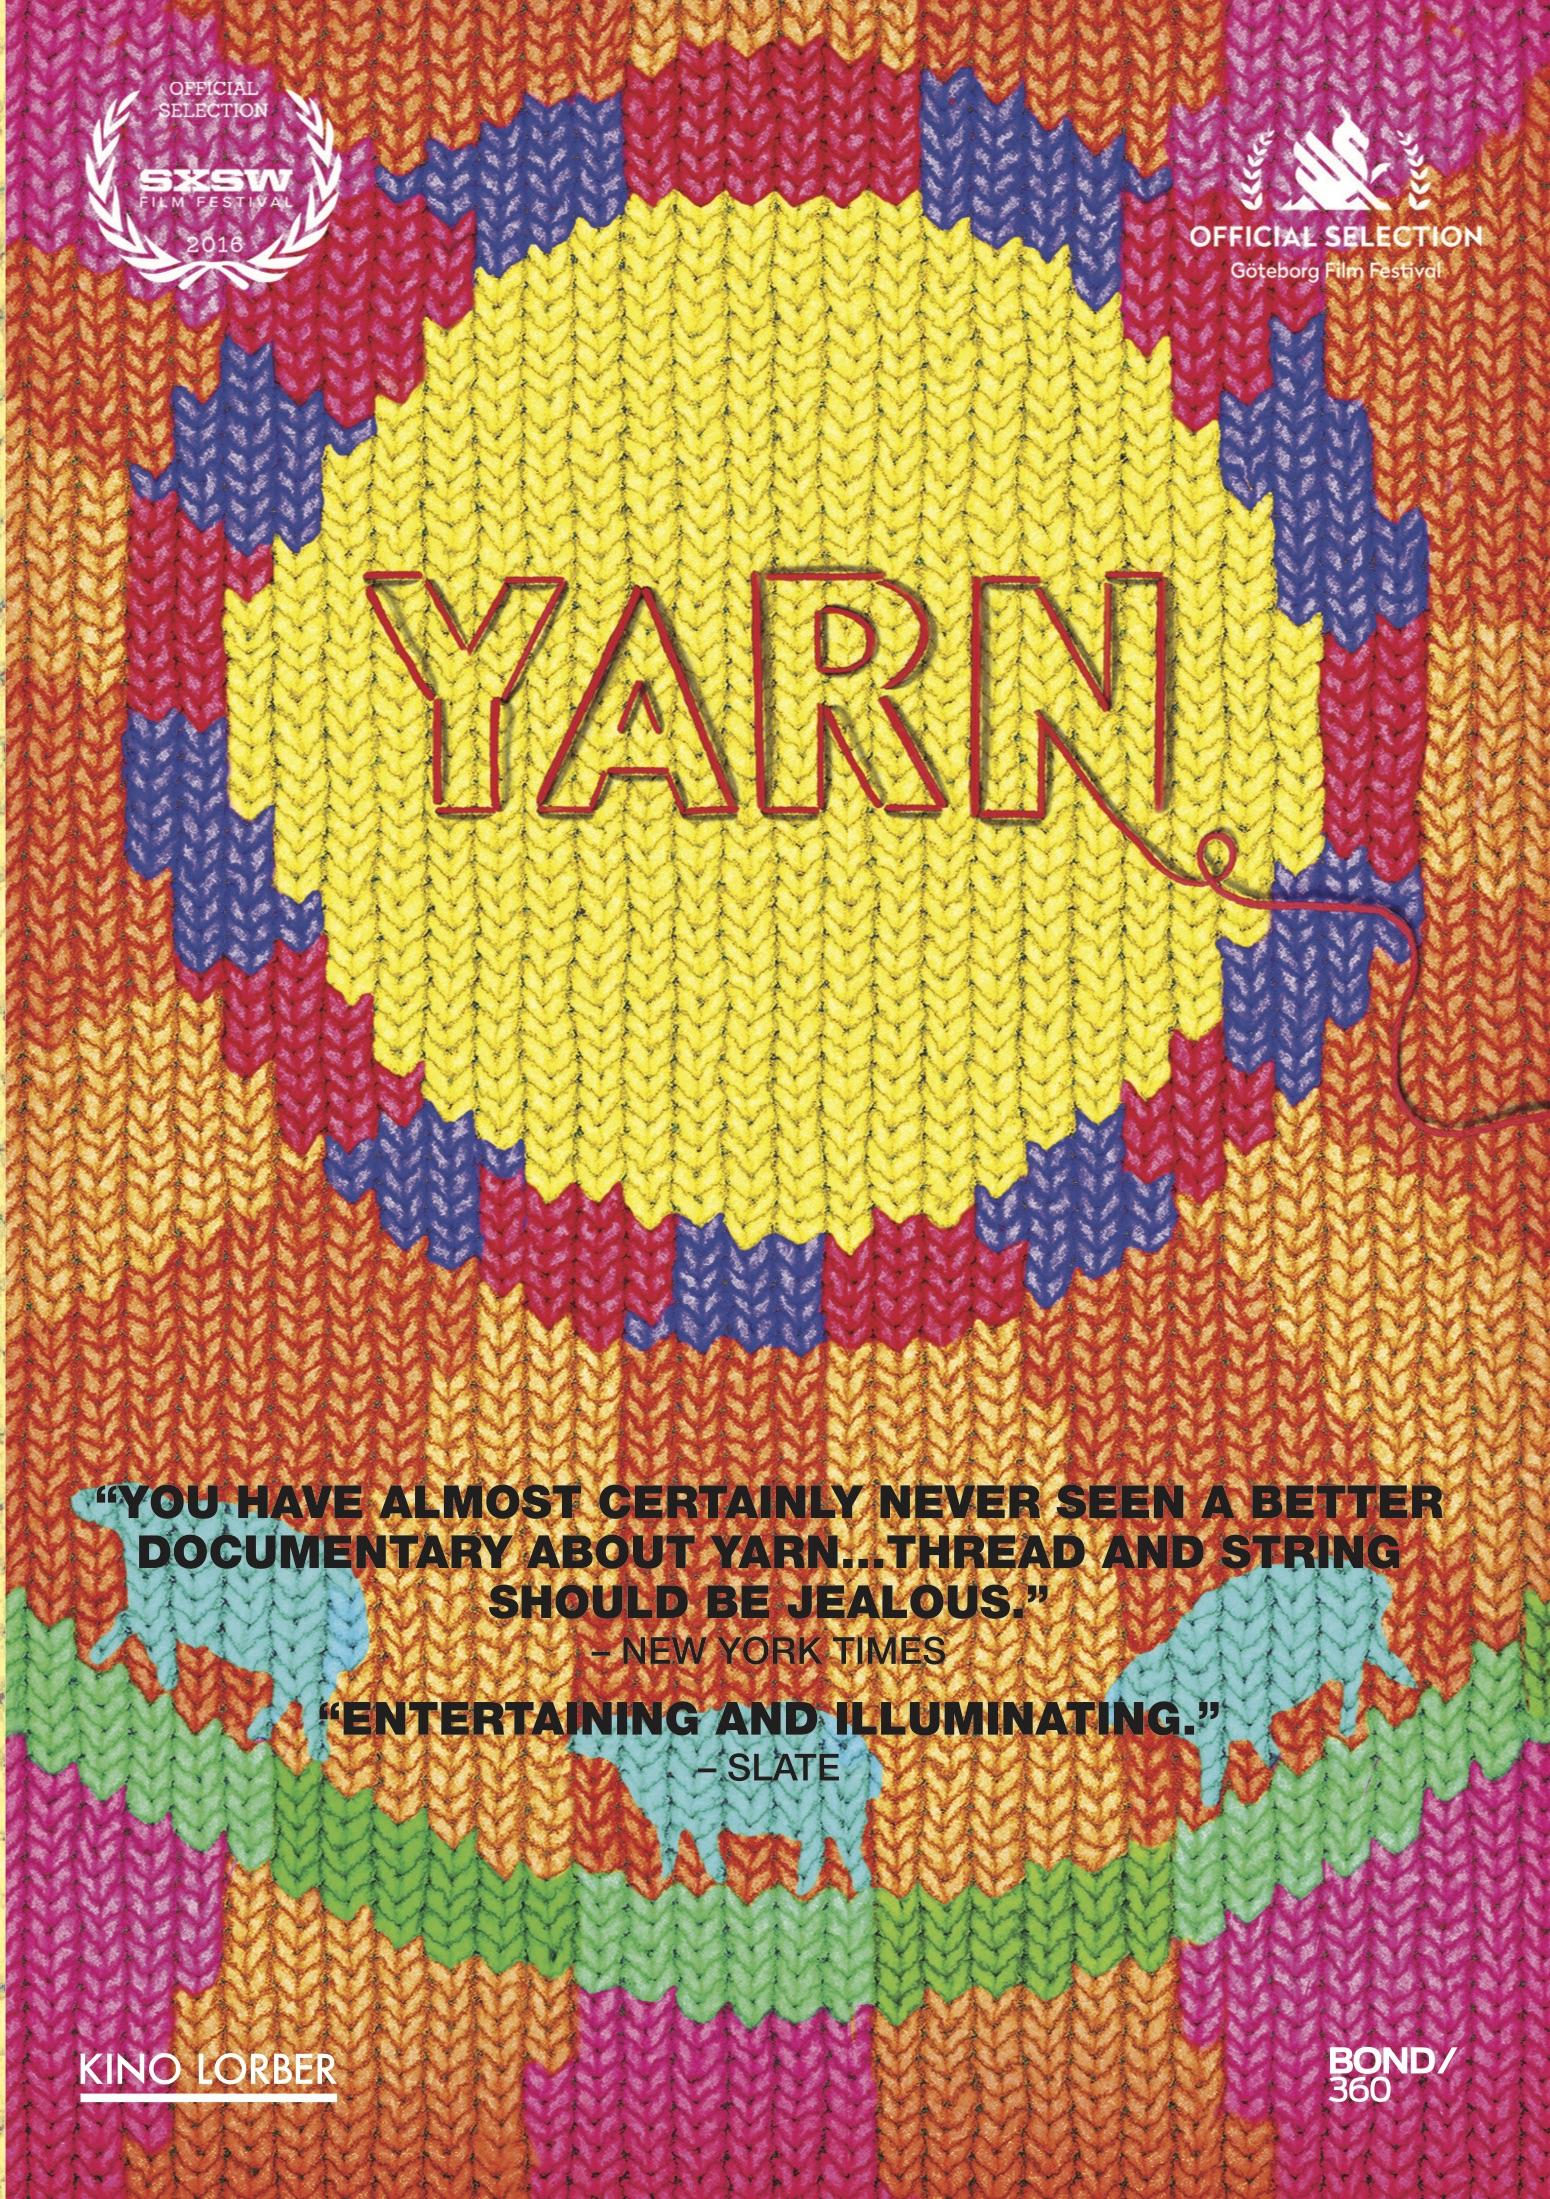 Is Knitting A \'Fiber Art\' Or Craft? It\'s Both, And More. | Texas ...